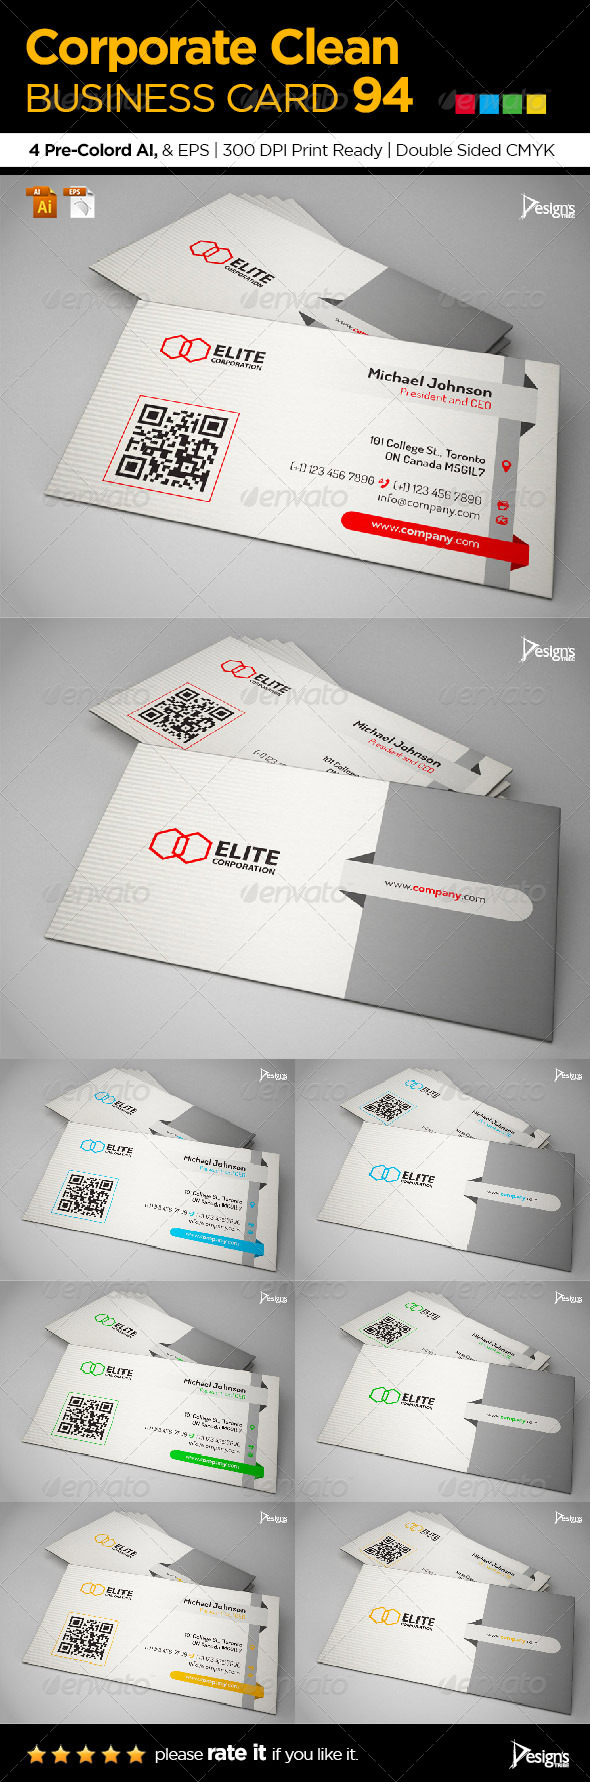 Corporate Clean Business Card 94 - Business Cards Print Templates